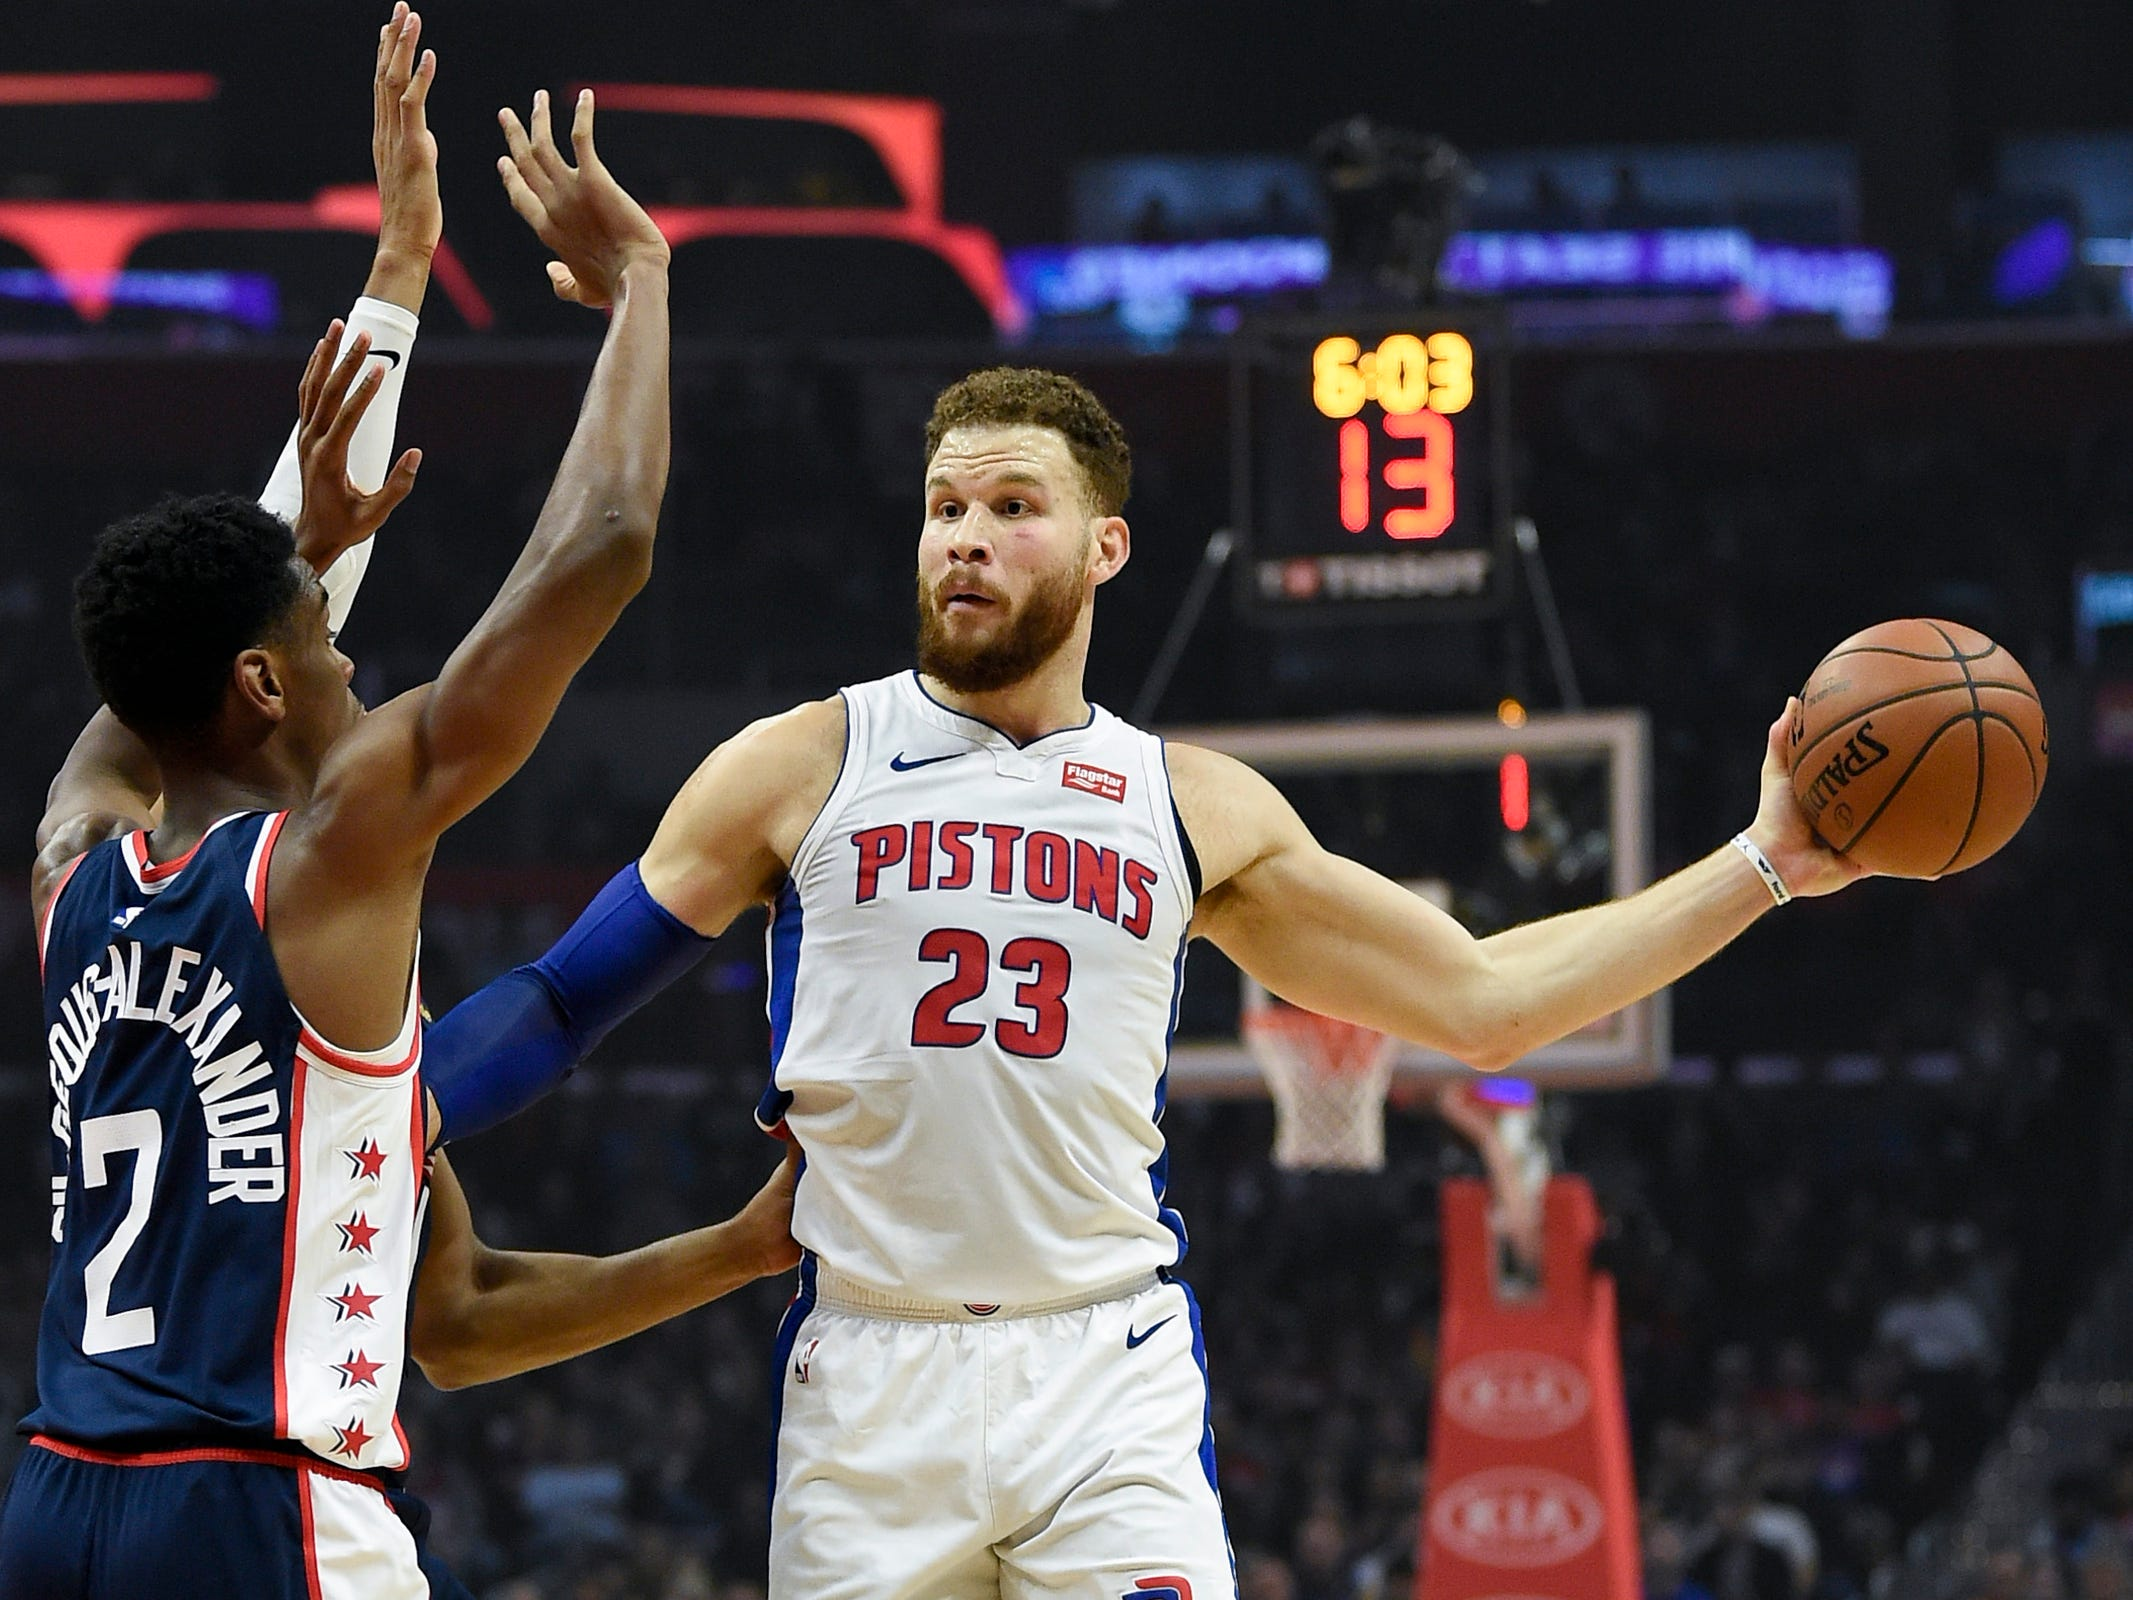 Detroit Pistons forward Blake Griffin looks to pass while Los Angeles Clippers guard Shai Gilgeous-Alexander defends during the first quarter at Staples Center, Jan. 12, 2019.